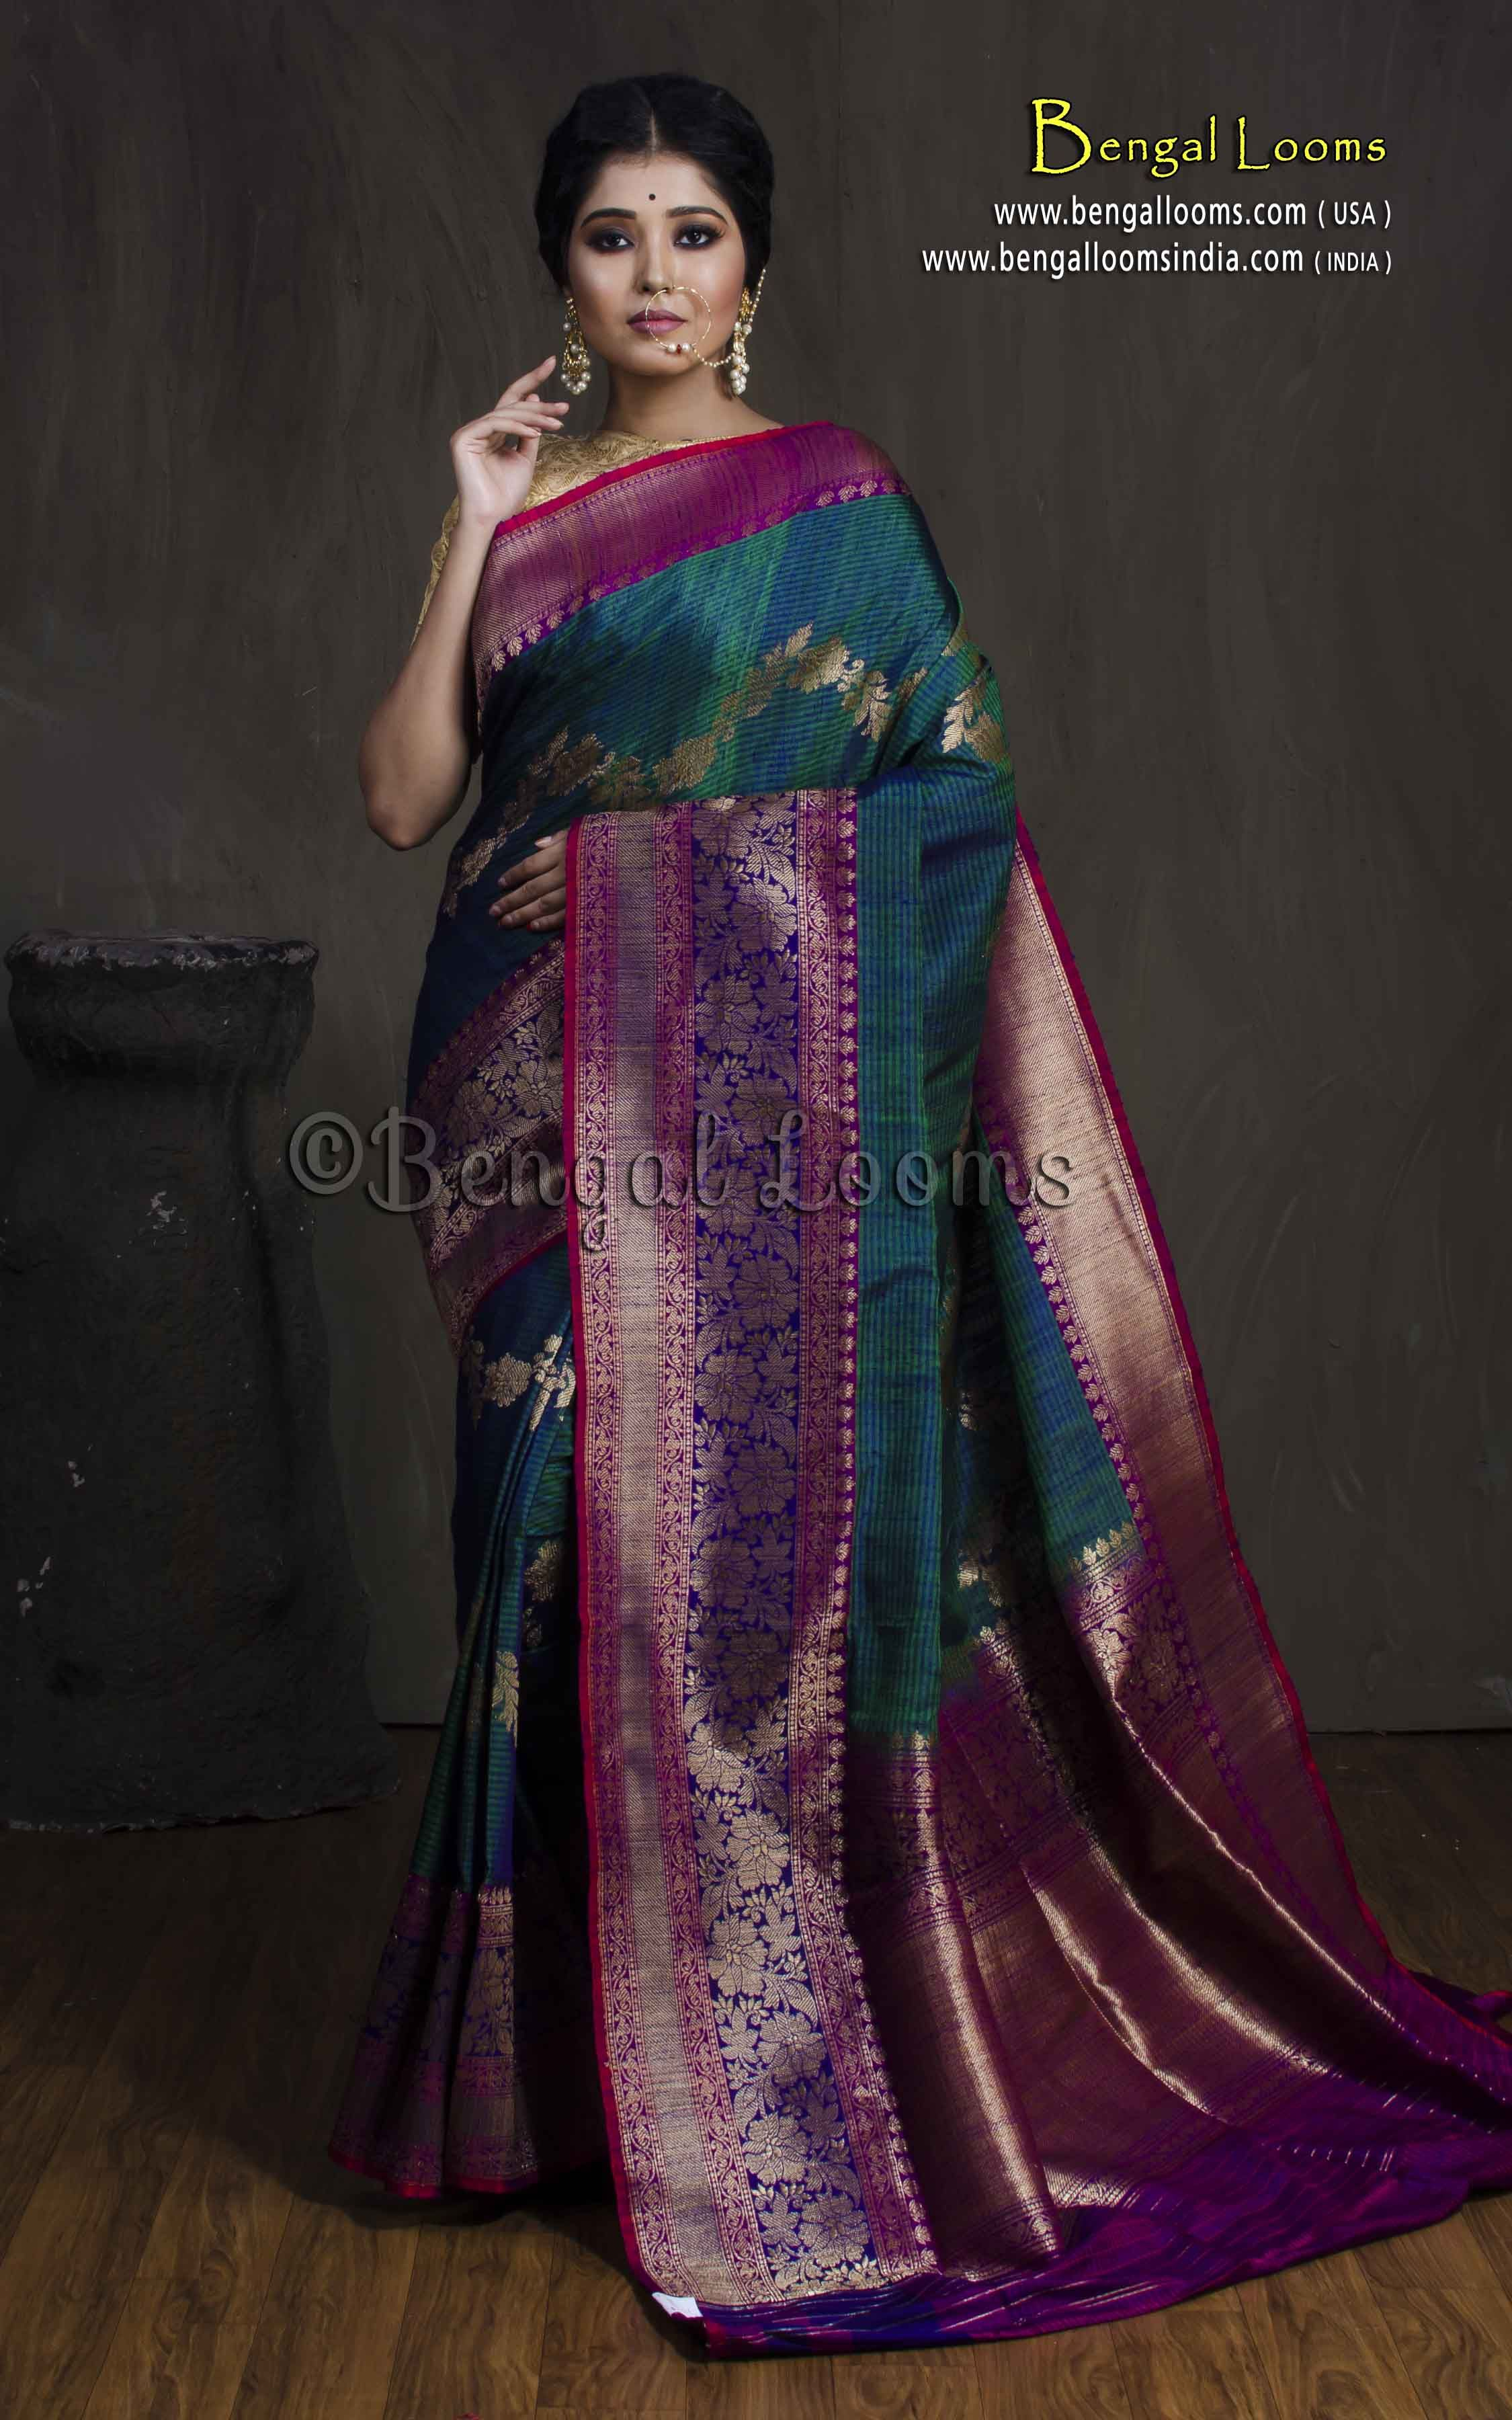 9529161f9c2b0d Tussar Banarasi Saree with Woven Work in Peacock Blue and Purple ...